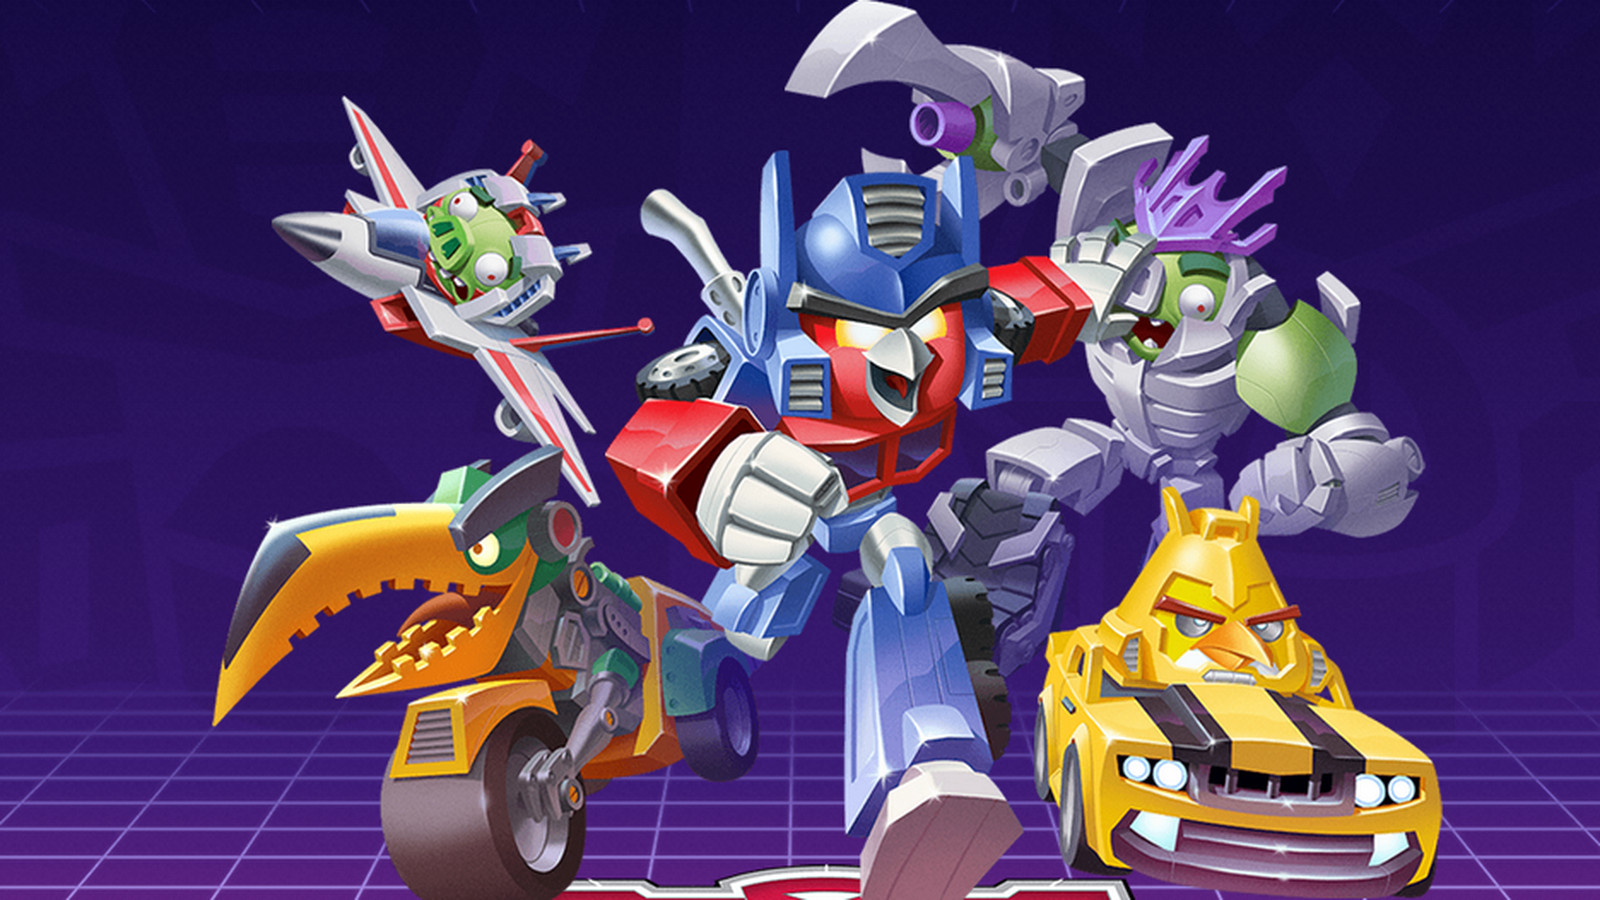 angry birds transformers 39 coming soon 39 to app stores polygon. Black Bedroom Furniture Sets. Home Design Ideas